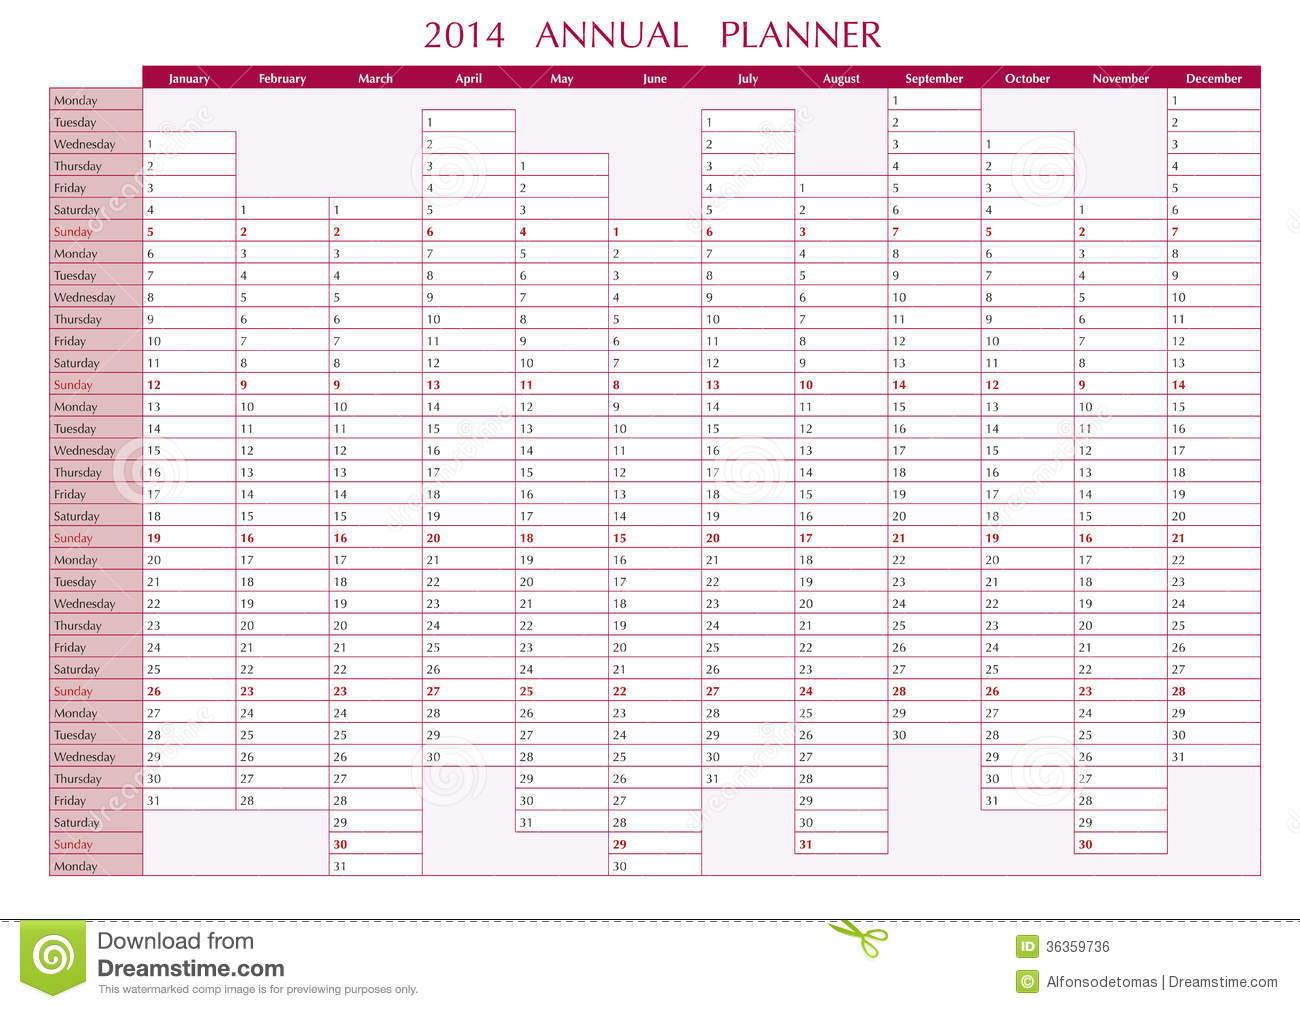 2014 Annual Planner in english. 2014 Wall Calendar.